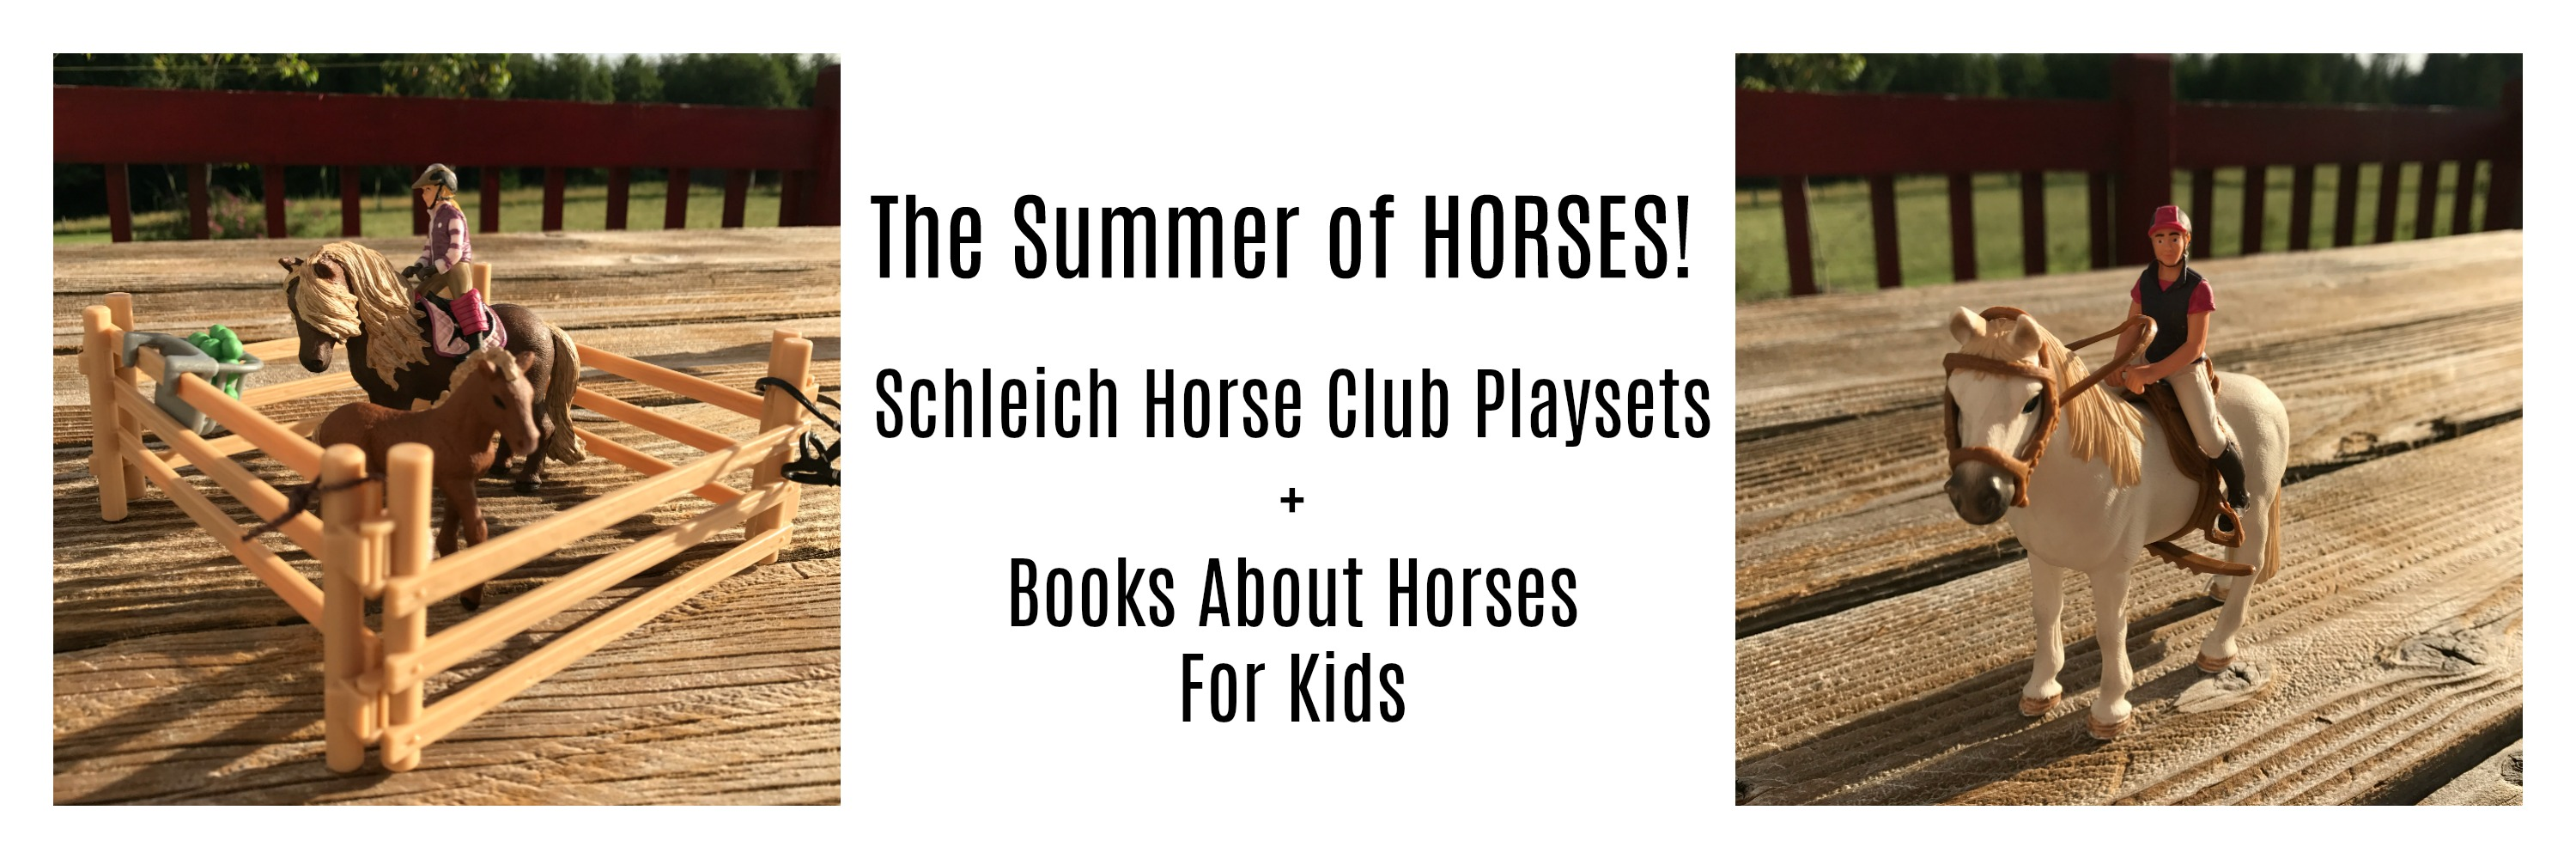 Play And Learn With Schleich Horse Play Sets Books About Horses For Kids